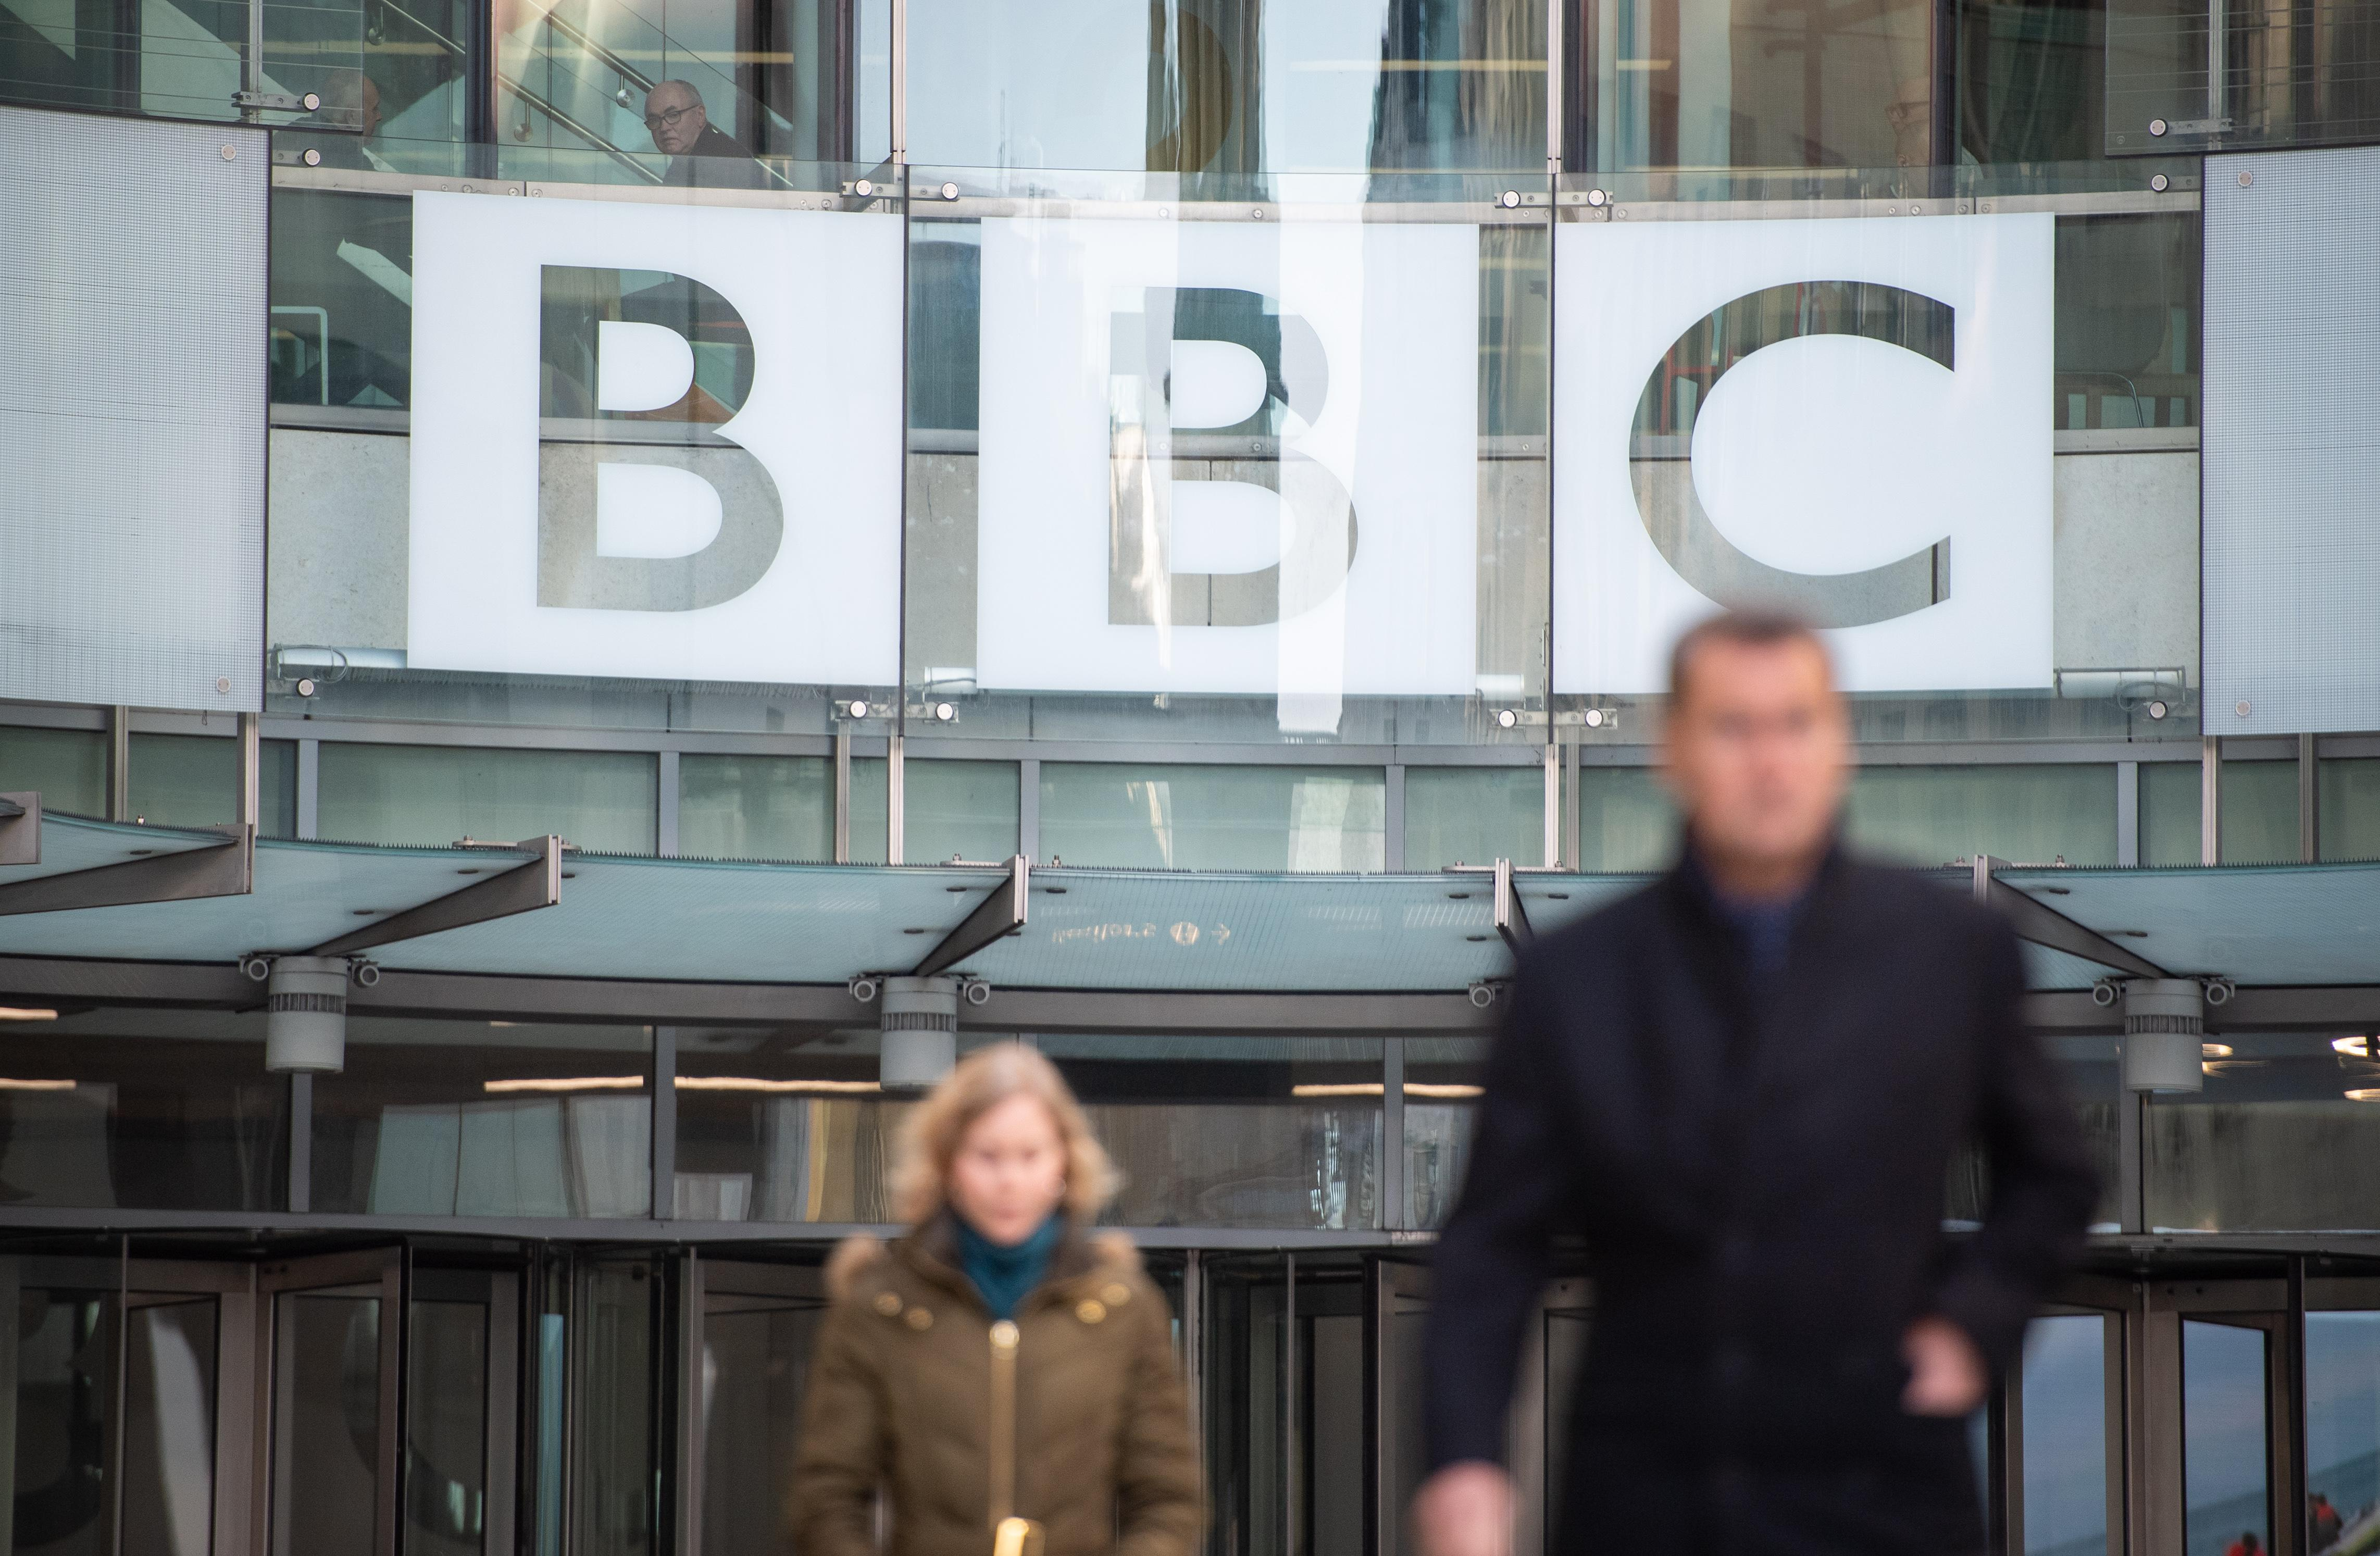 BBC partnered with Google and Facebook on general election fake news